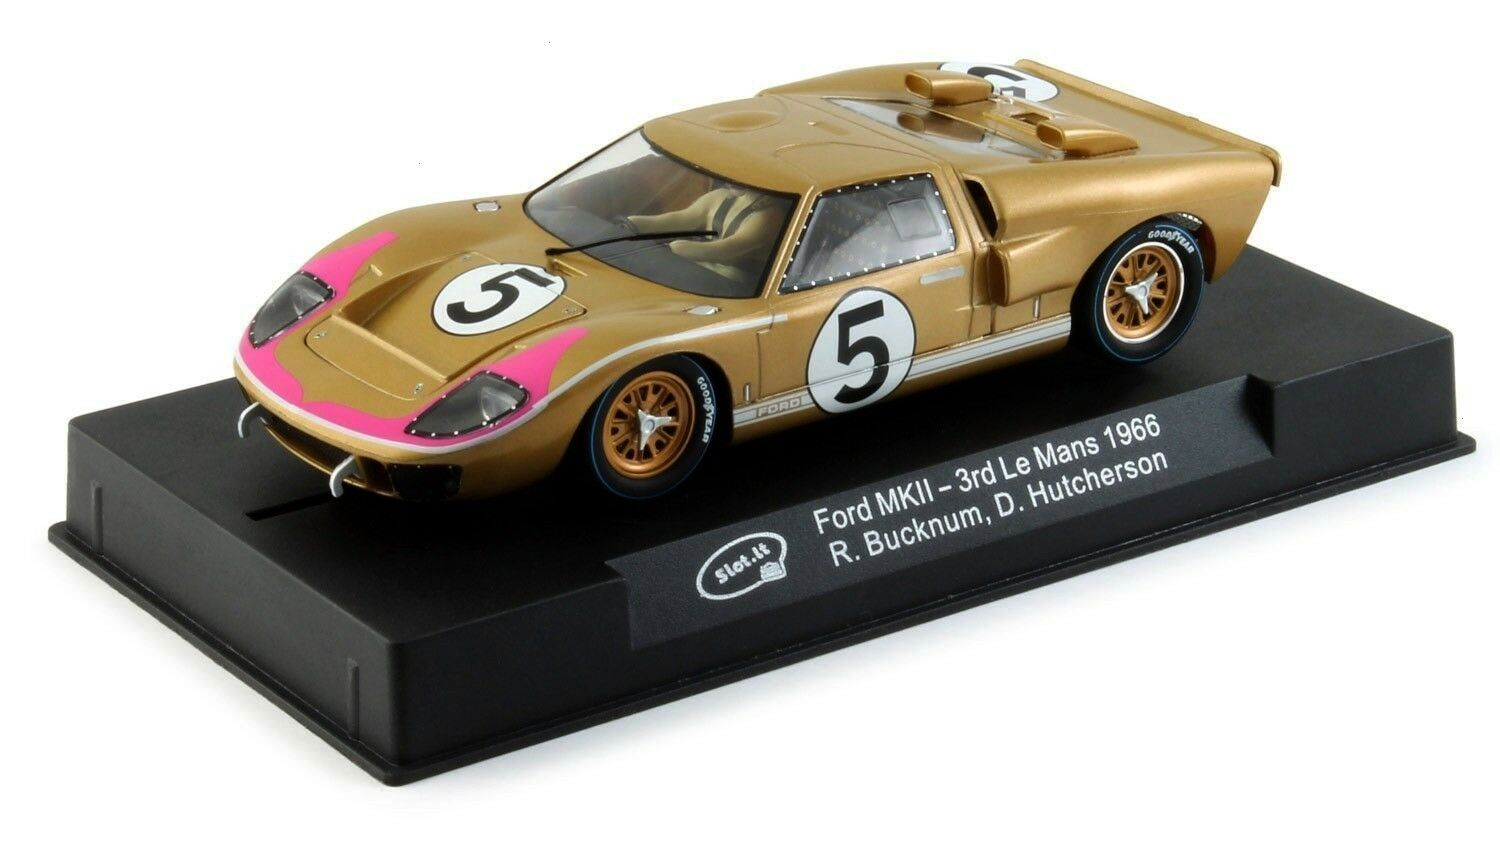 link) Slot It Ford GT40 MKII - 1966 Le Mans 3rd 1/32 Scale Slot Car CA20C $49.99(eBay link) Slot It